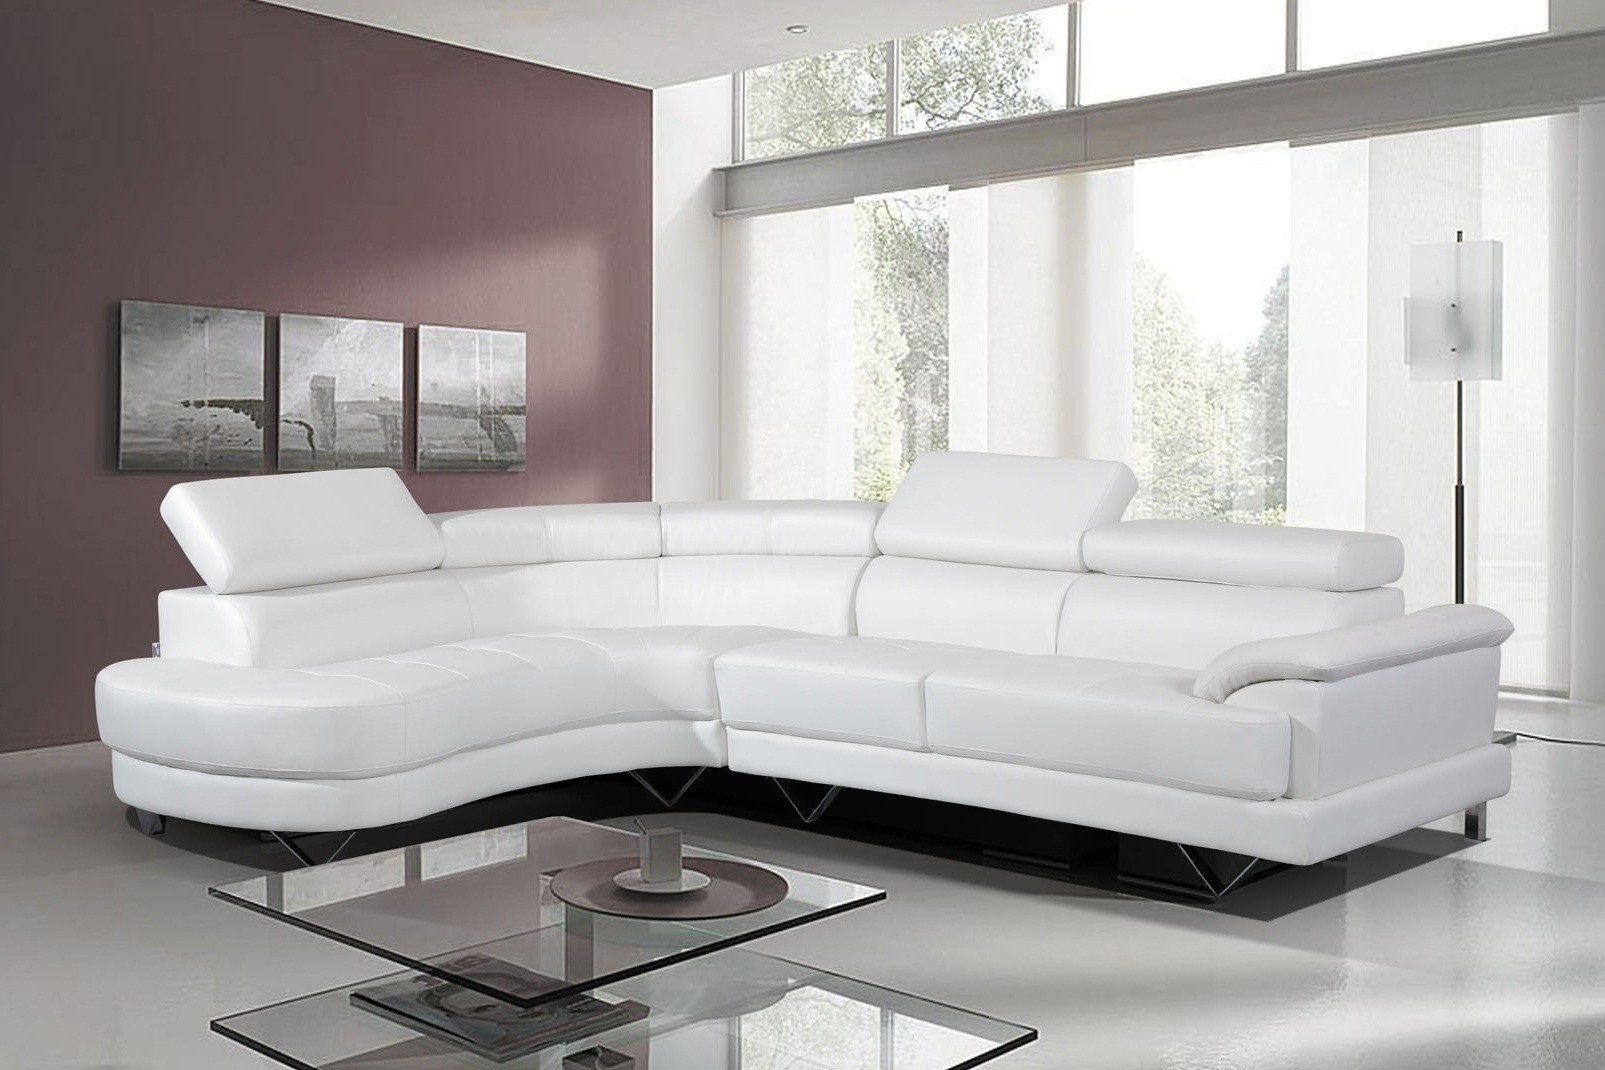 Gallery White Corner Sofa Leather – Mediasupload For White Leather Corner Sofas (View 2 of 10)